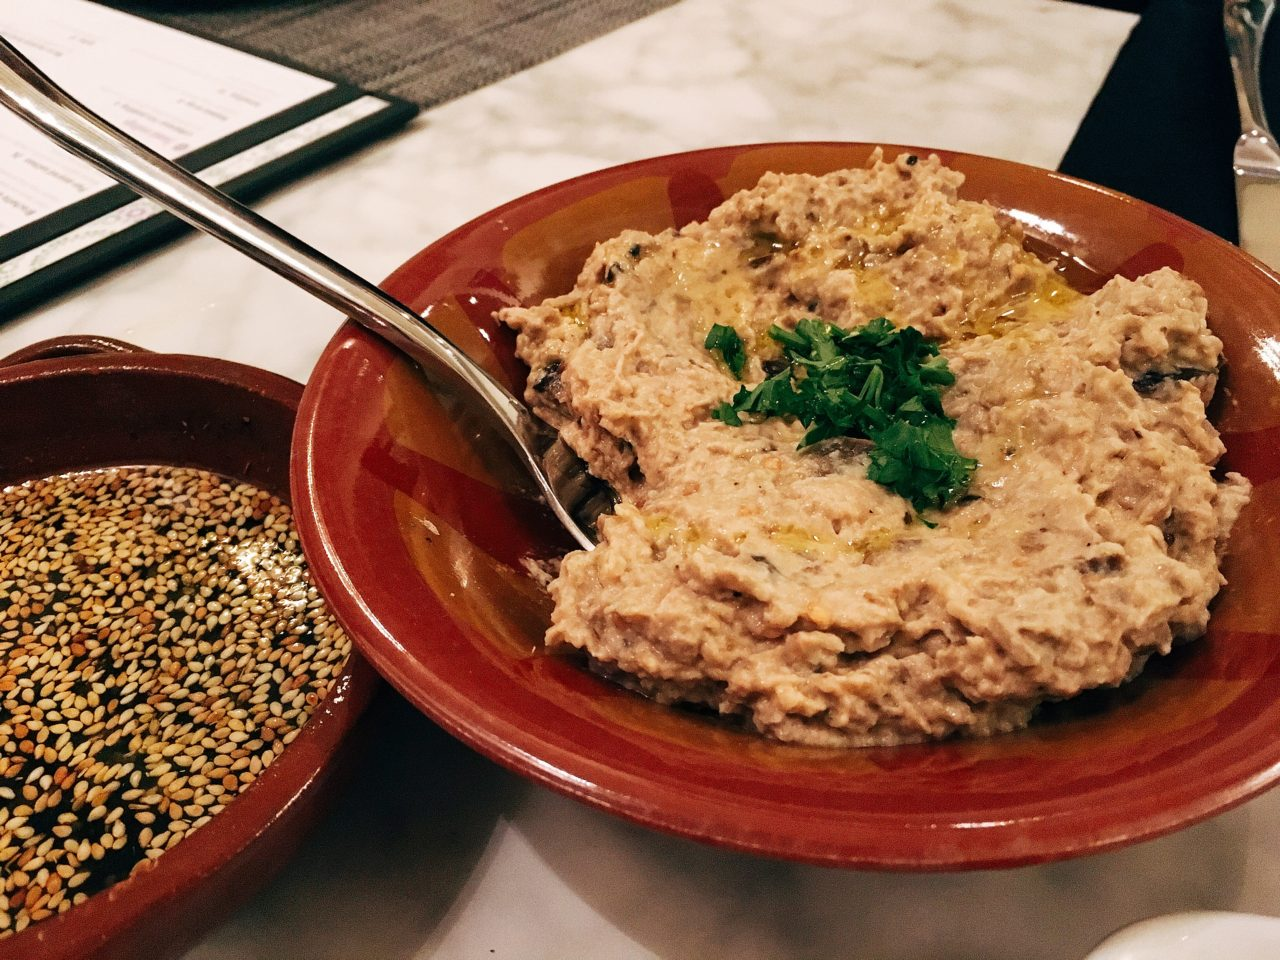 Baba ghannouj - Lebanese Food - Zatar Dallas - Deep Ellum Restaurants